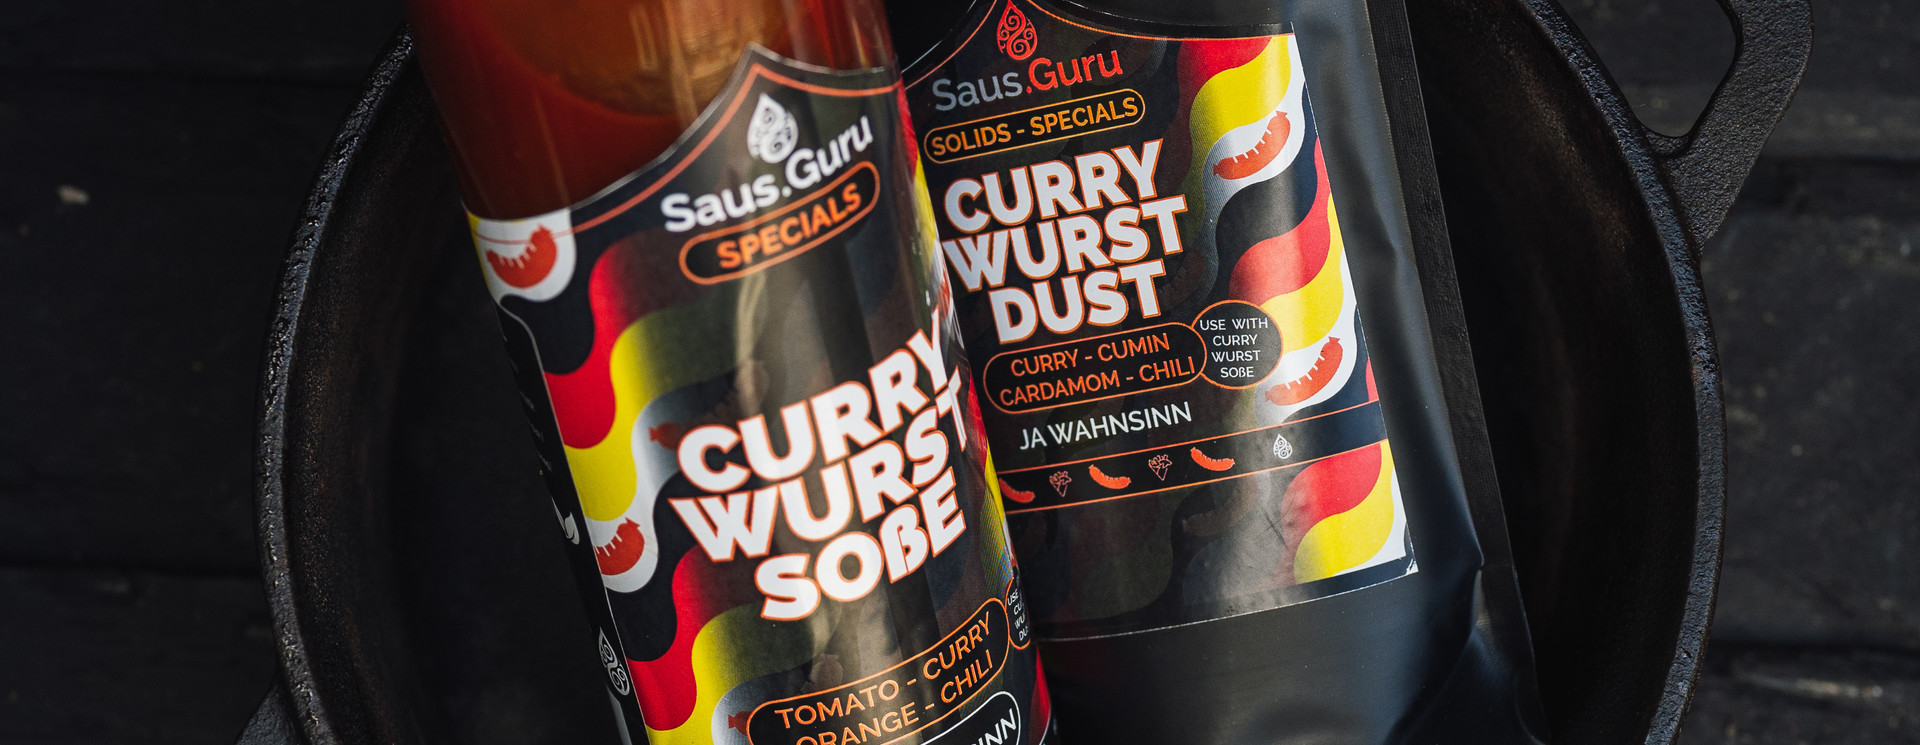 Currywurst + Dust